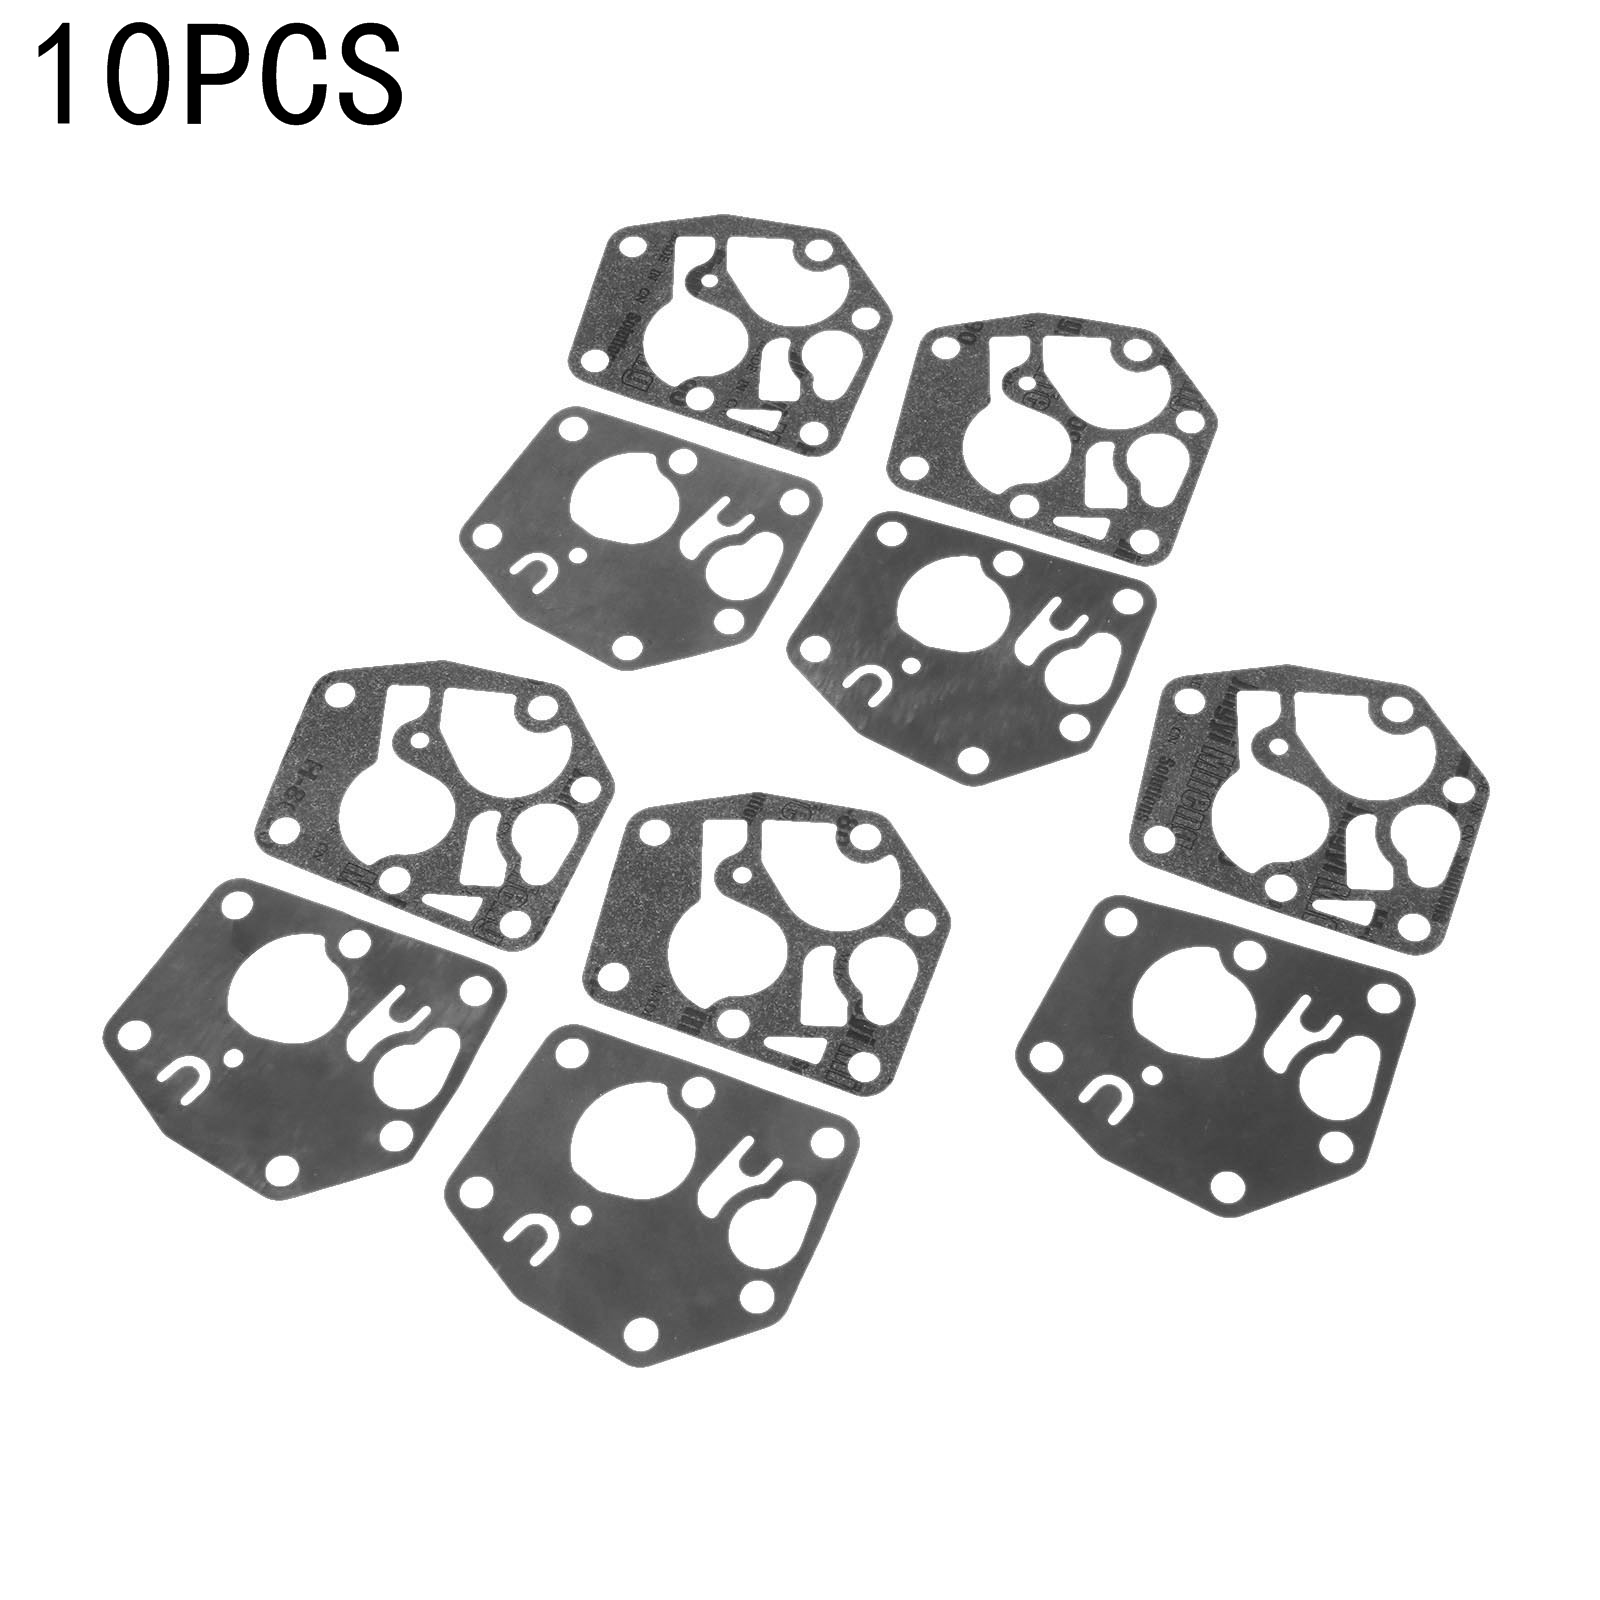 DRELD 10Pcs Replacement Carburetor Diaphram Kit Lawn Mower Lawnmower Carb Gasket for <font><b>Briggs</b></font> & Stratton 495770 <font><b>795083</b></font> 5083D 7721 image